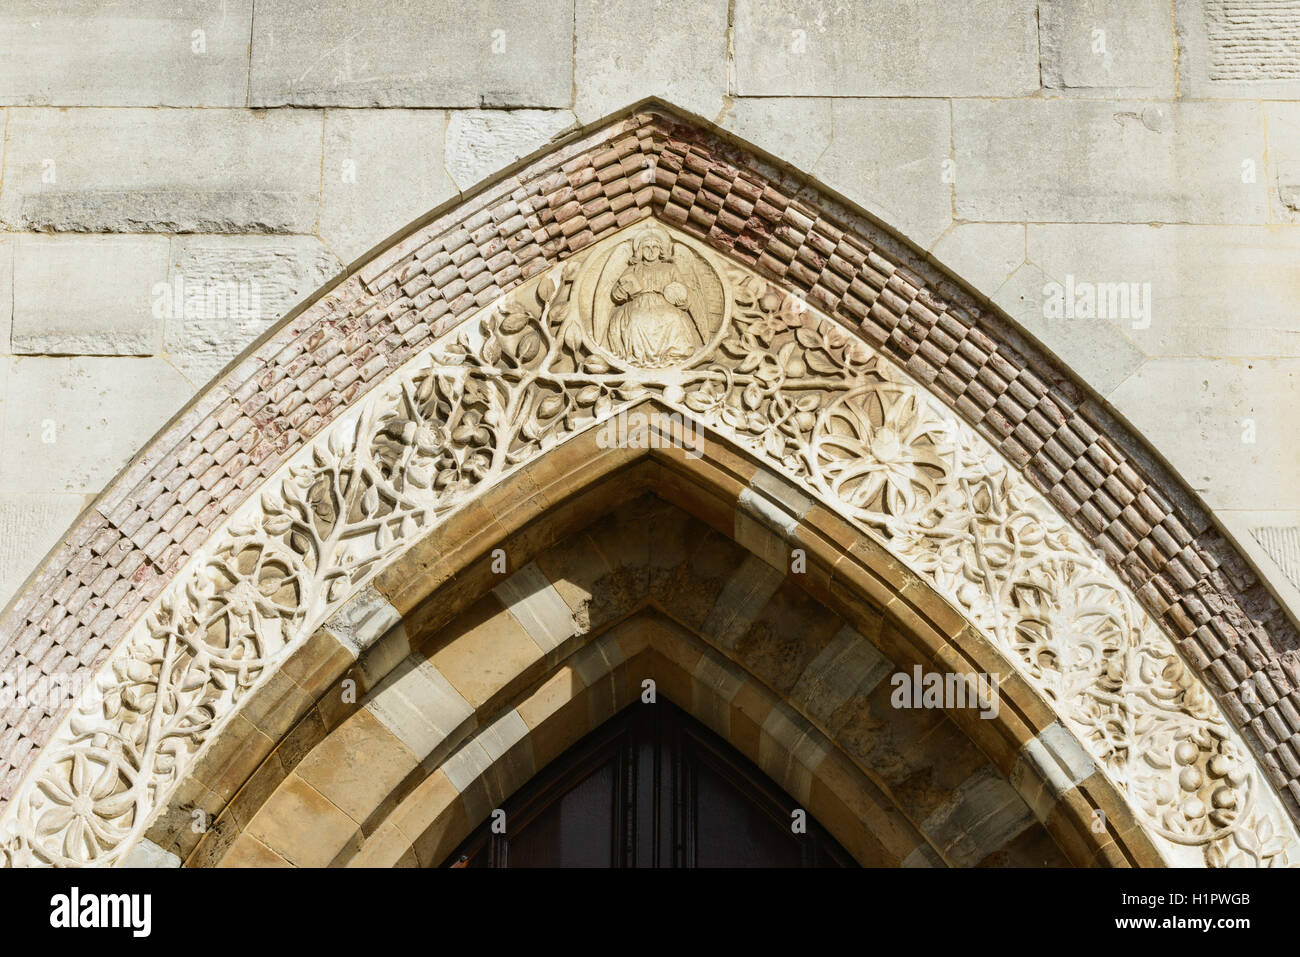 Detail of the entrance arch of the University Museum and Pitt Rivers Museum Oxford England UK - Stock Image